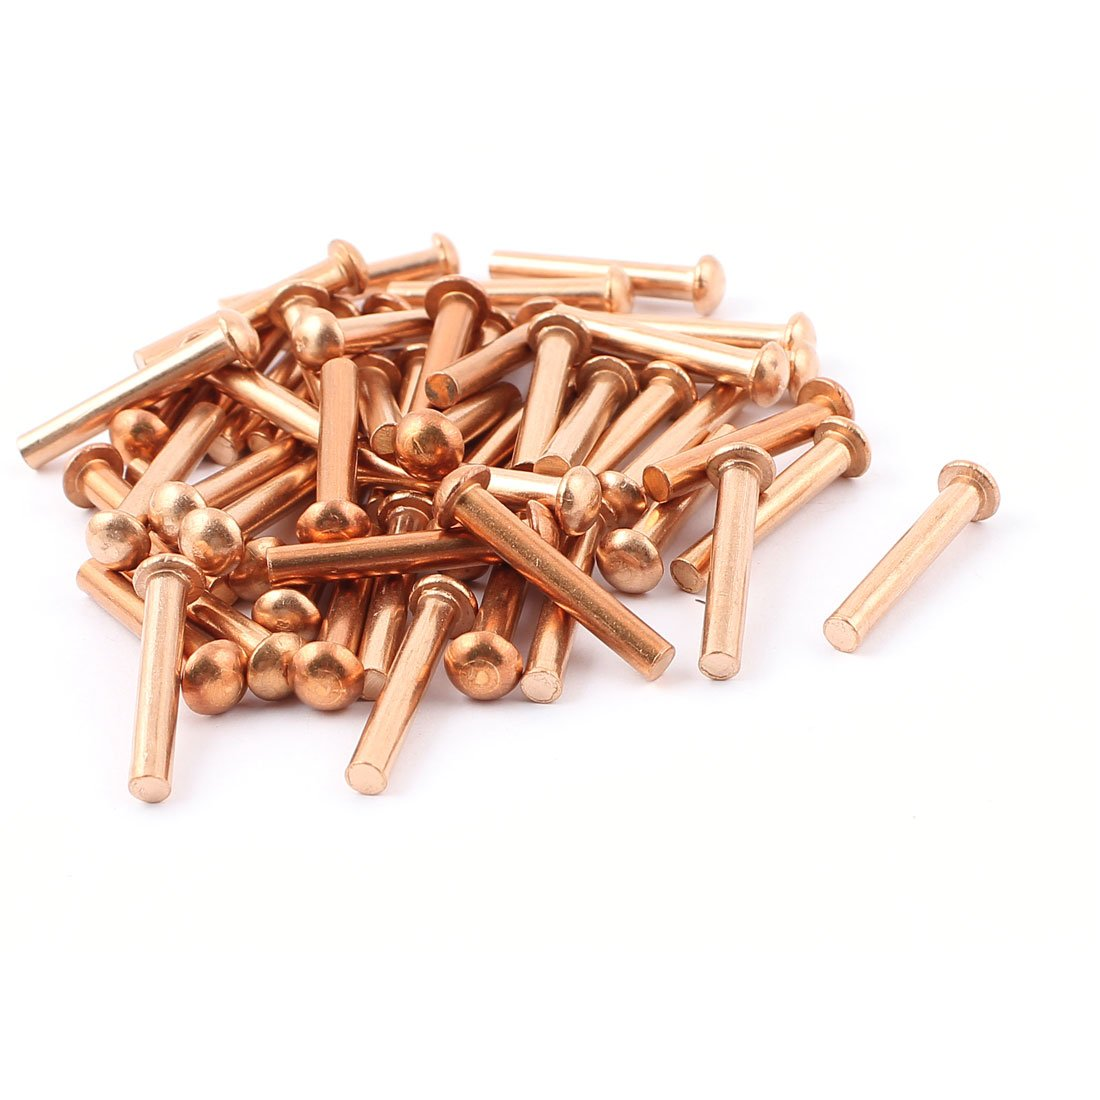 uxcell 50 Pcs 5/32 inches x 1 inches Round Head Copper Solid Rivets Fasteners by uxcell